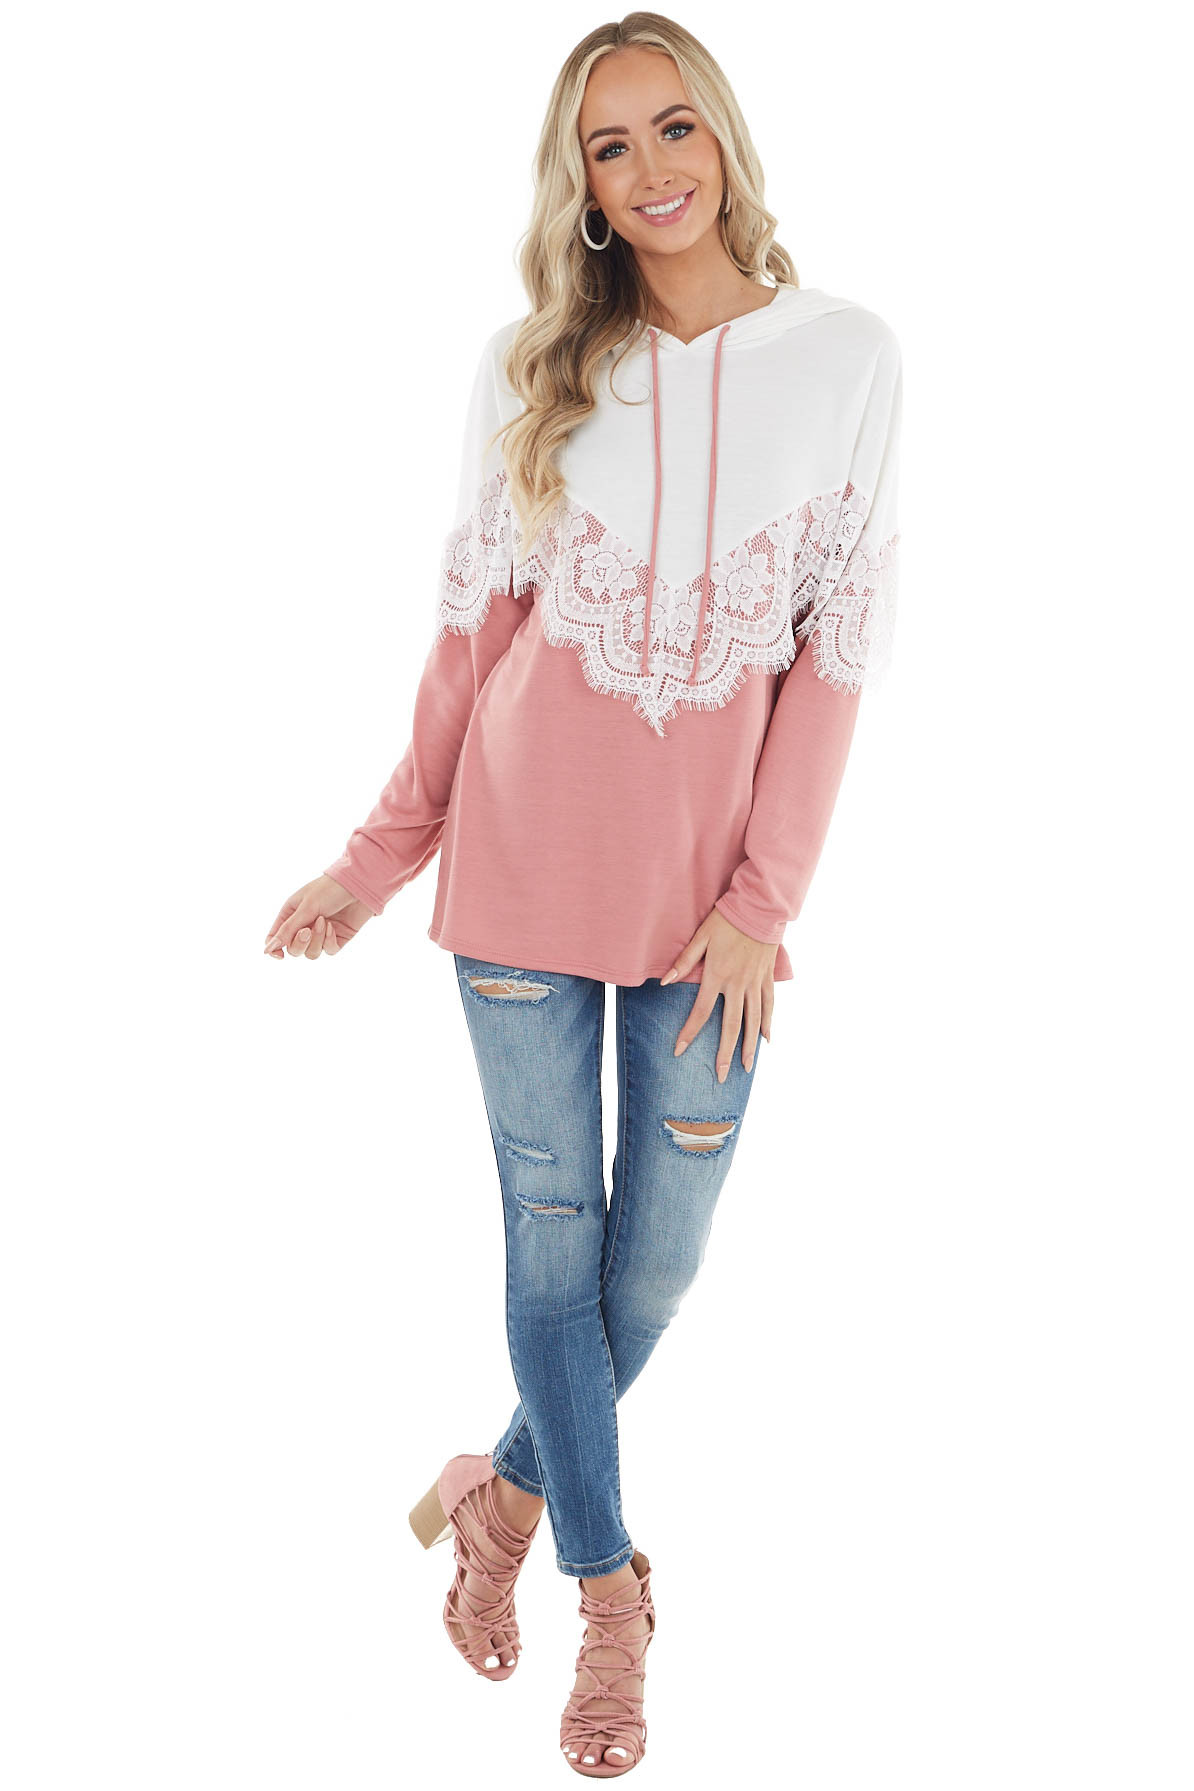 Dusty Blush and Ivory Colorblock Hoodie with Lace Detail